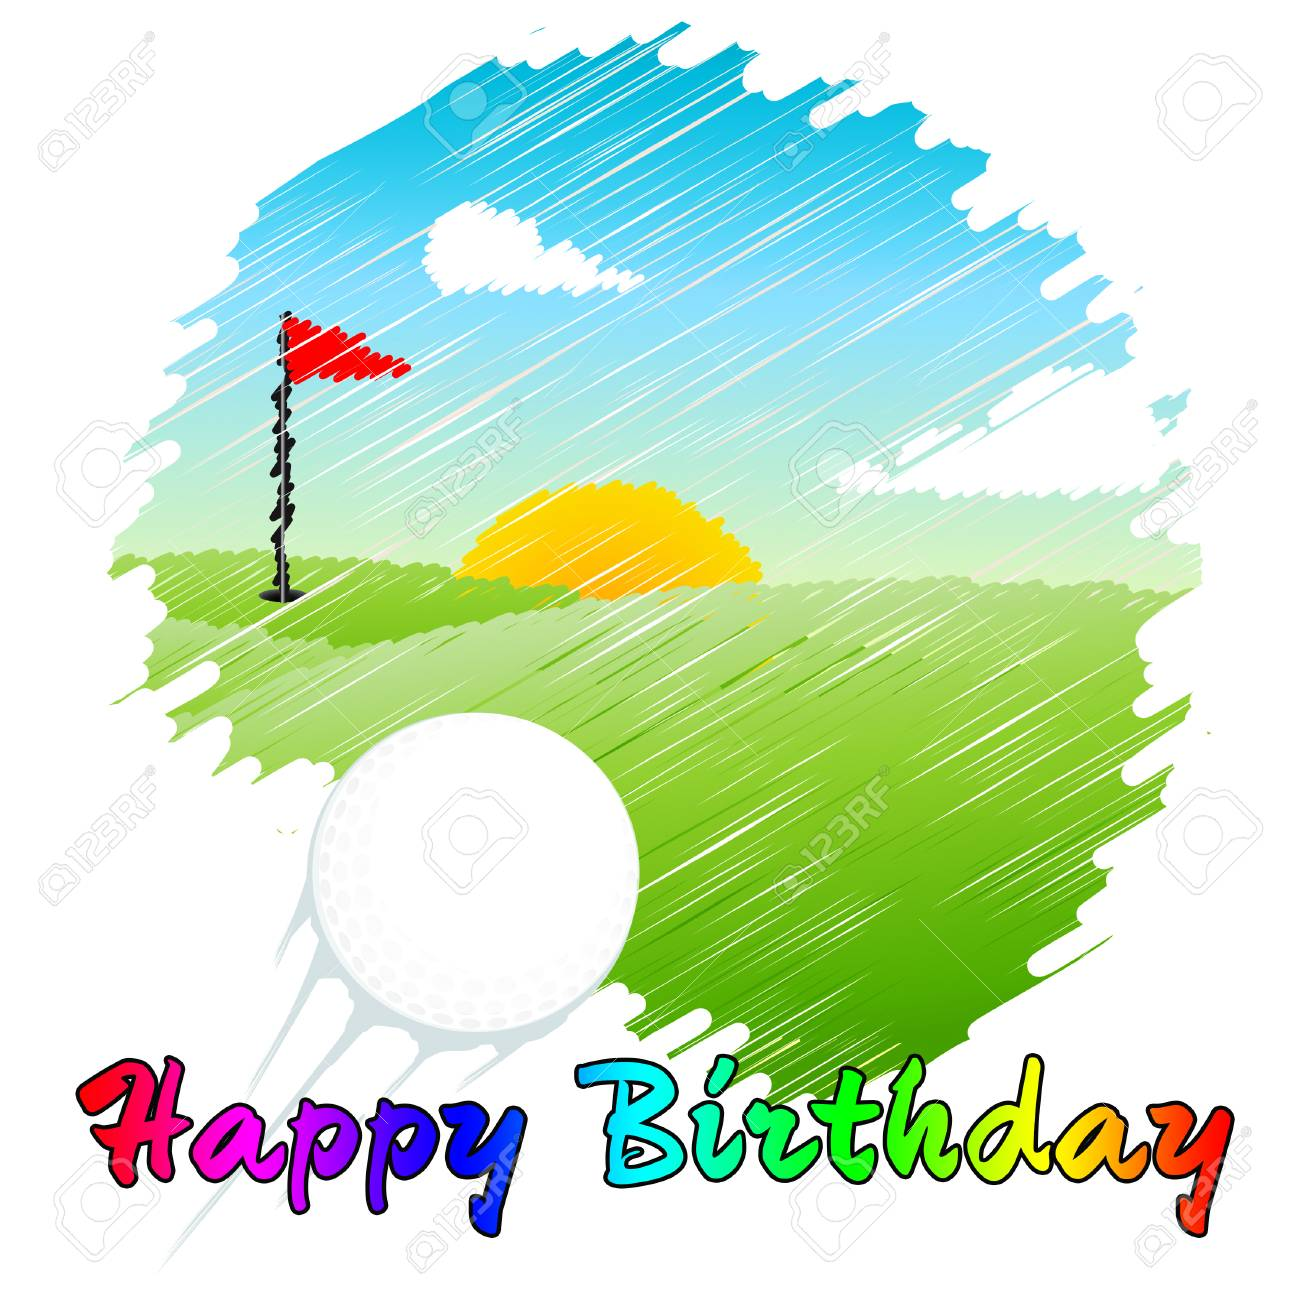 Happy Birthday Golfer Message As Surprise Greeting For Golf Player Stock Photo Picture And Royalty Free Image Image 116117056